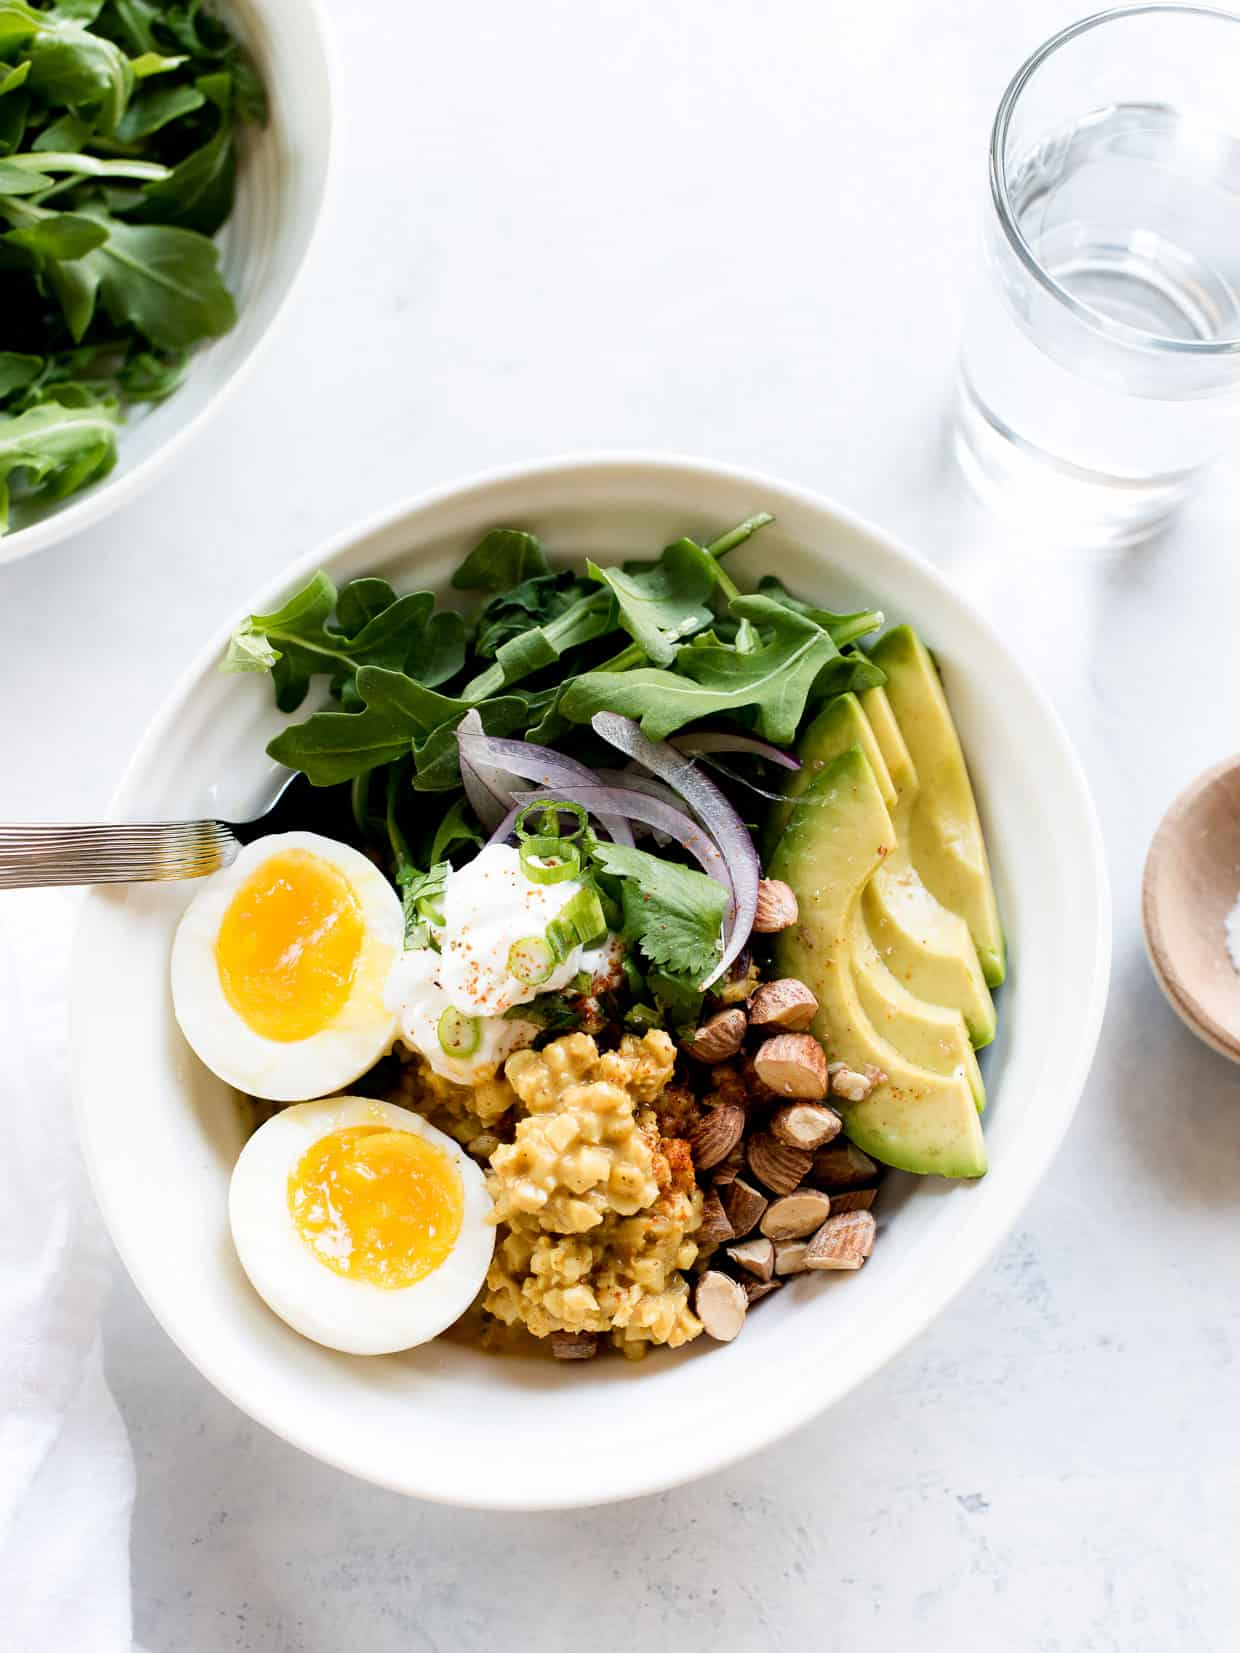 Coconut Curry Cauliflower Rice Bowls topped with eggs, almonds and avocado slices.